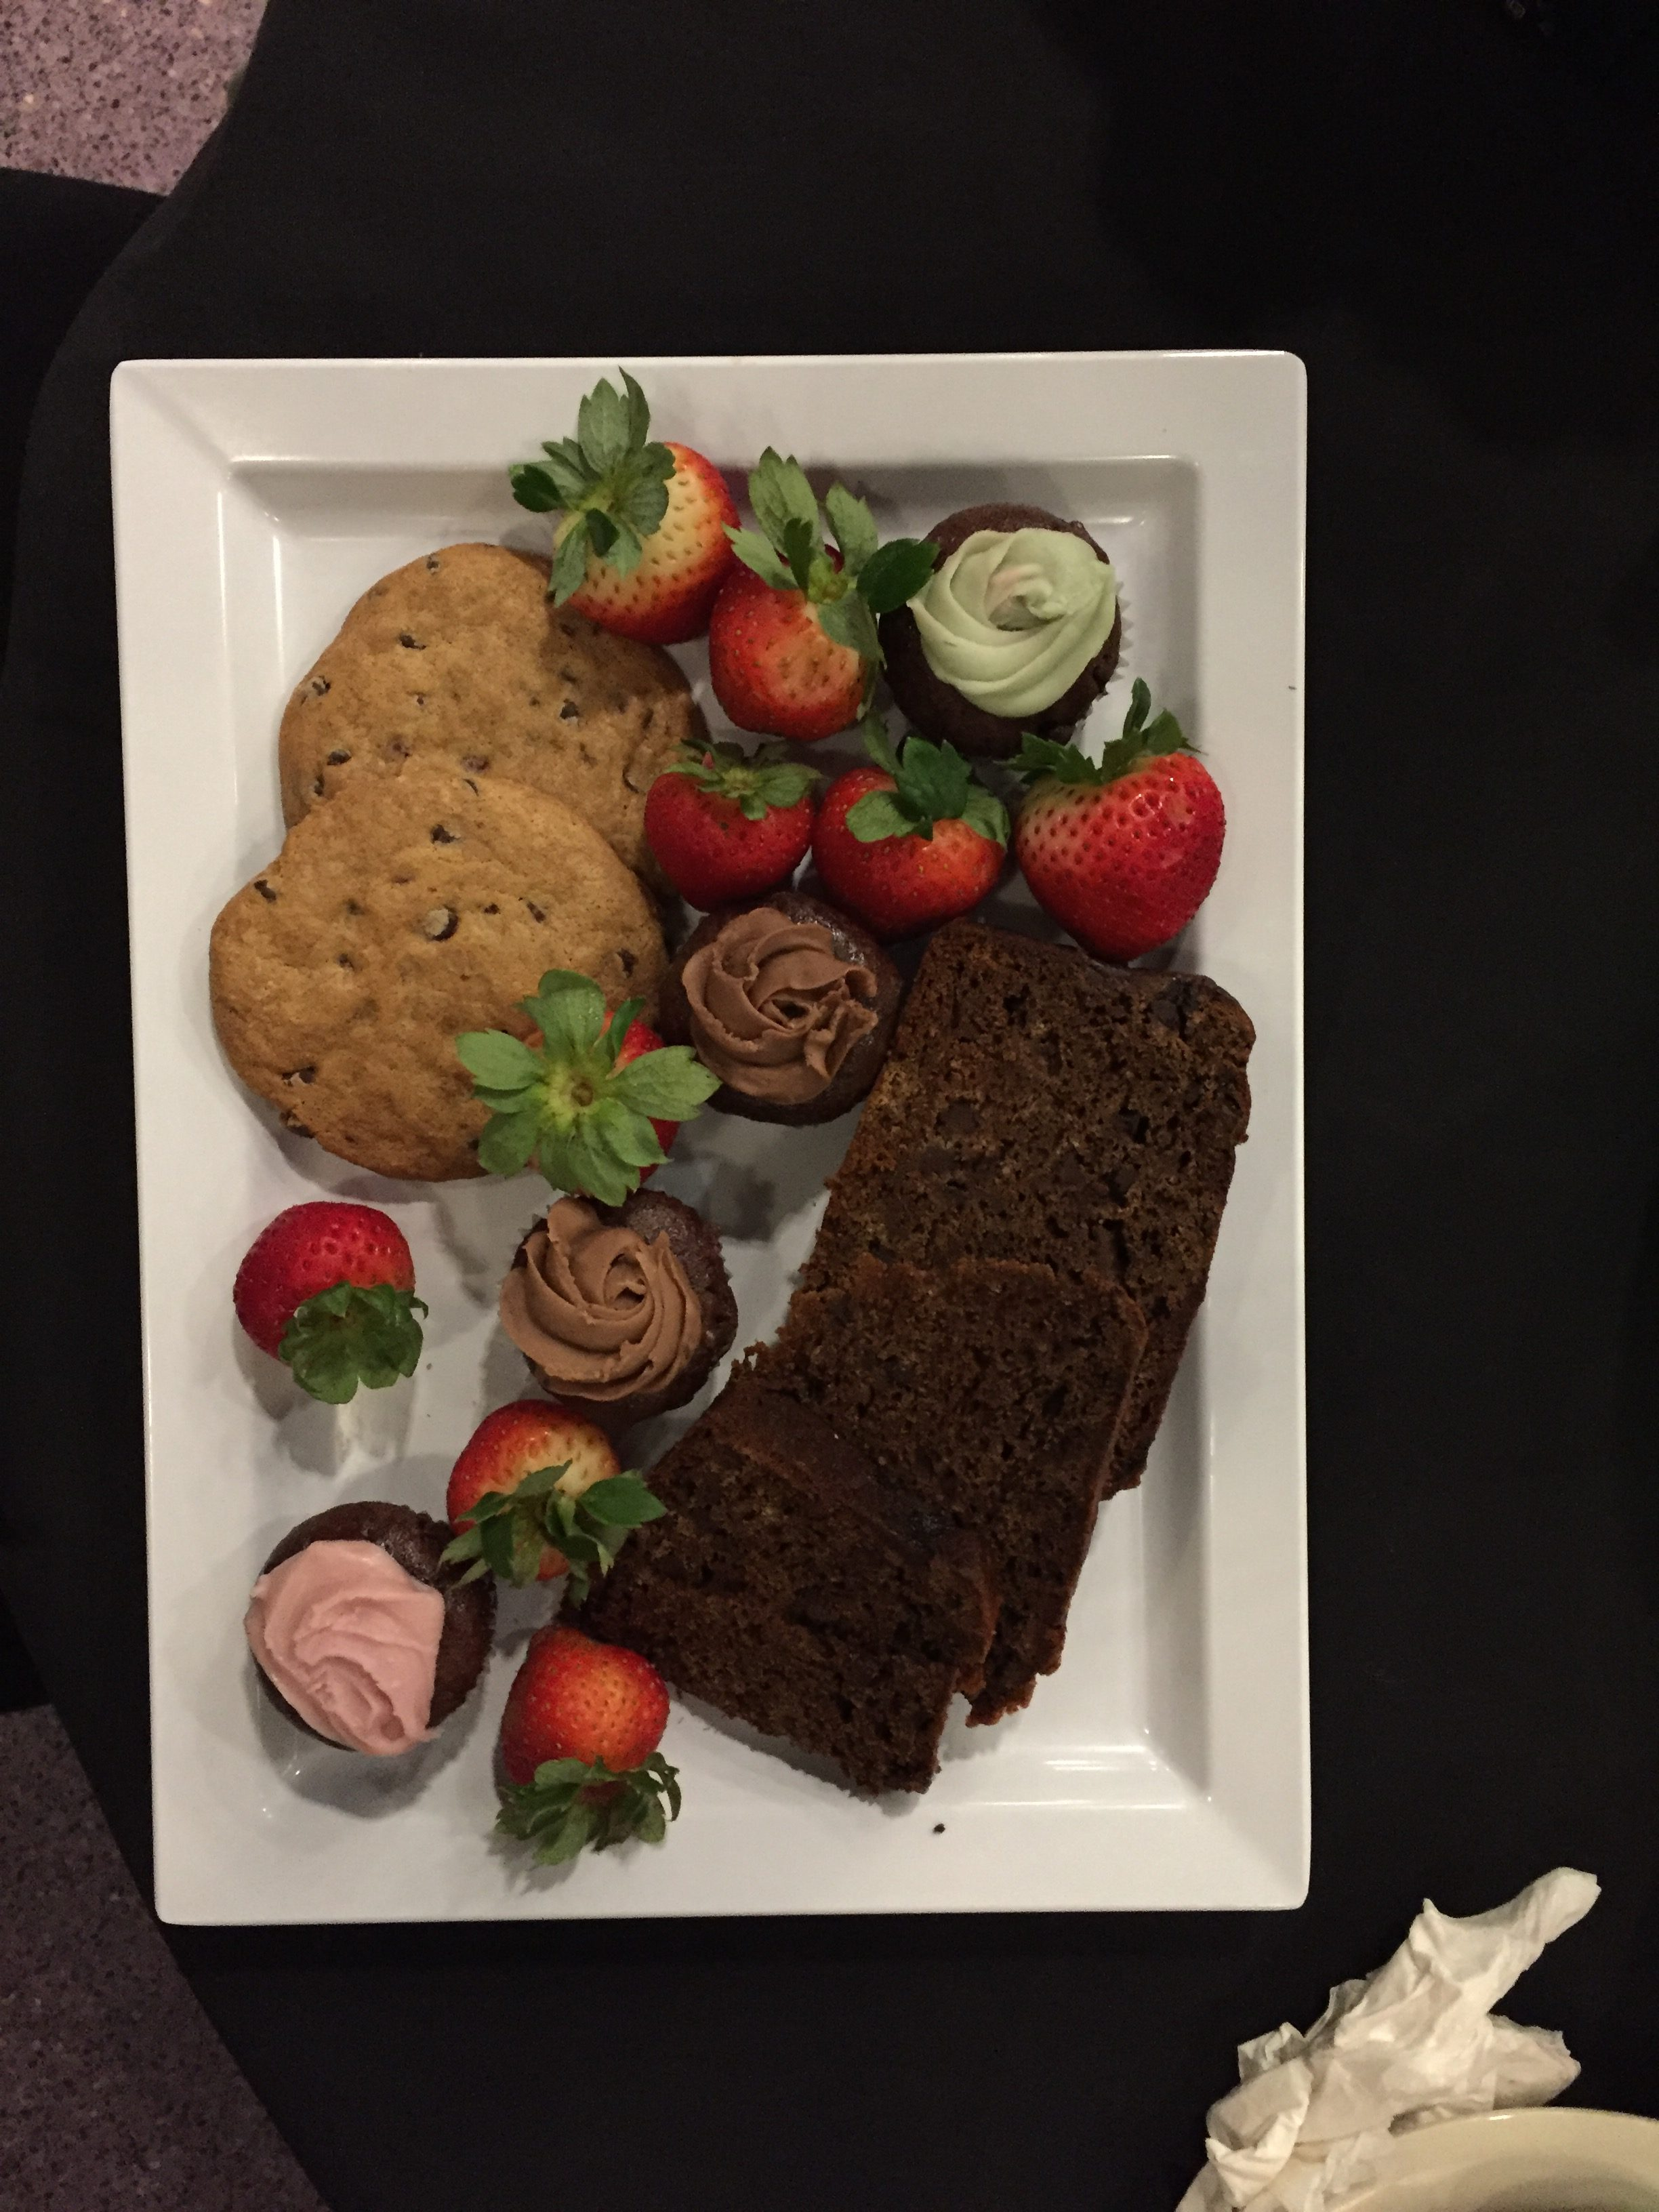 Vegan dessert platter at Disney's Wishes Fireworks Dessert Party #vegan #disneyworld